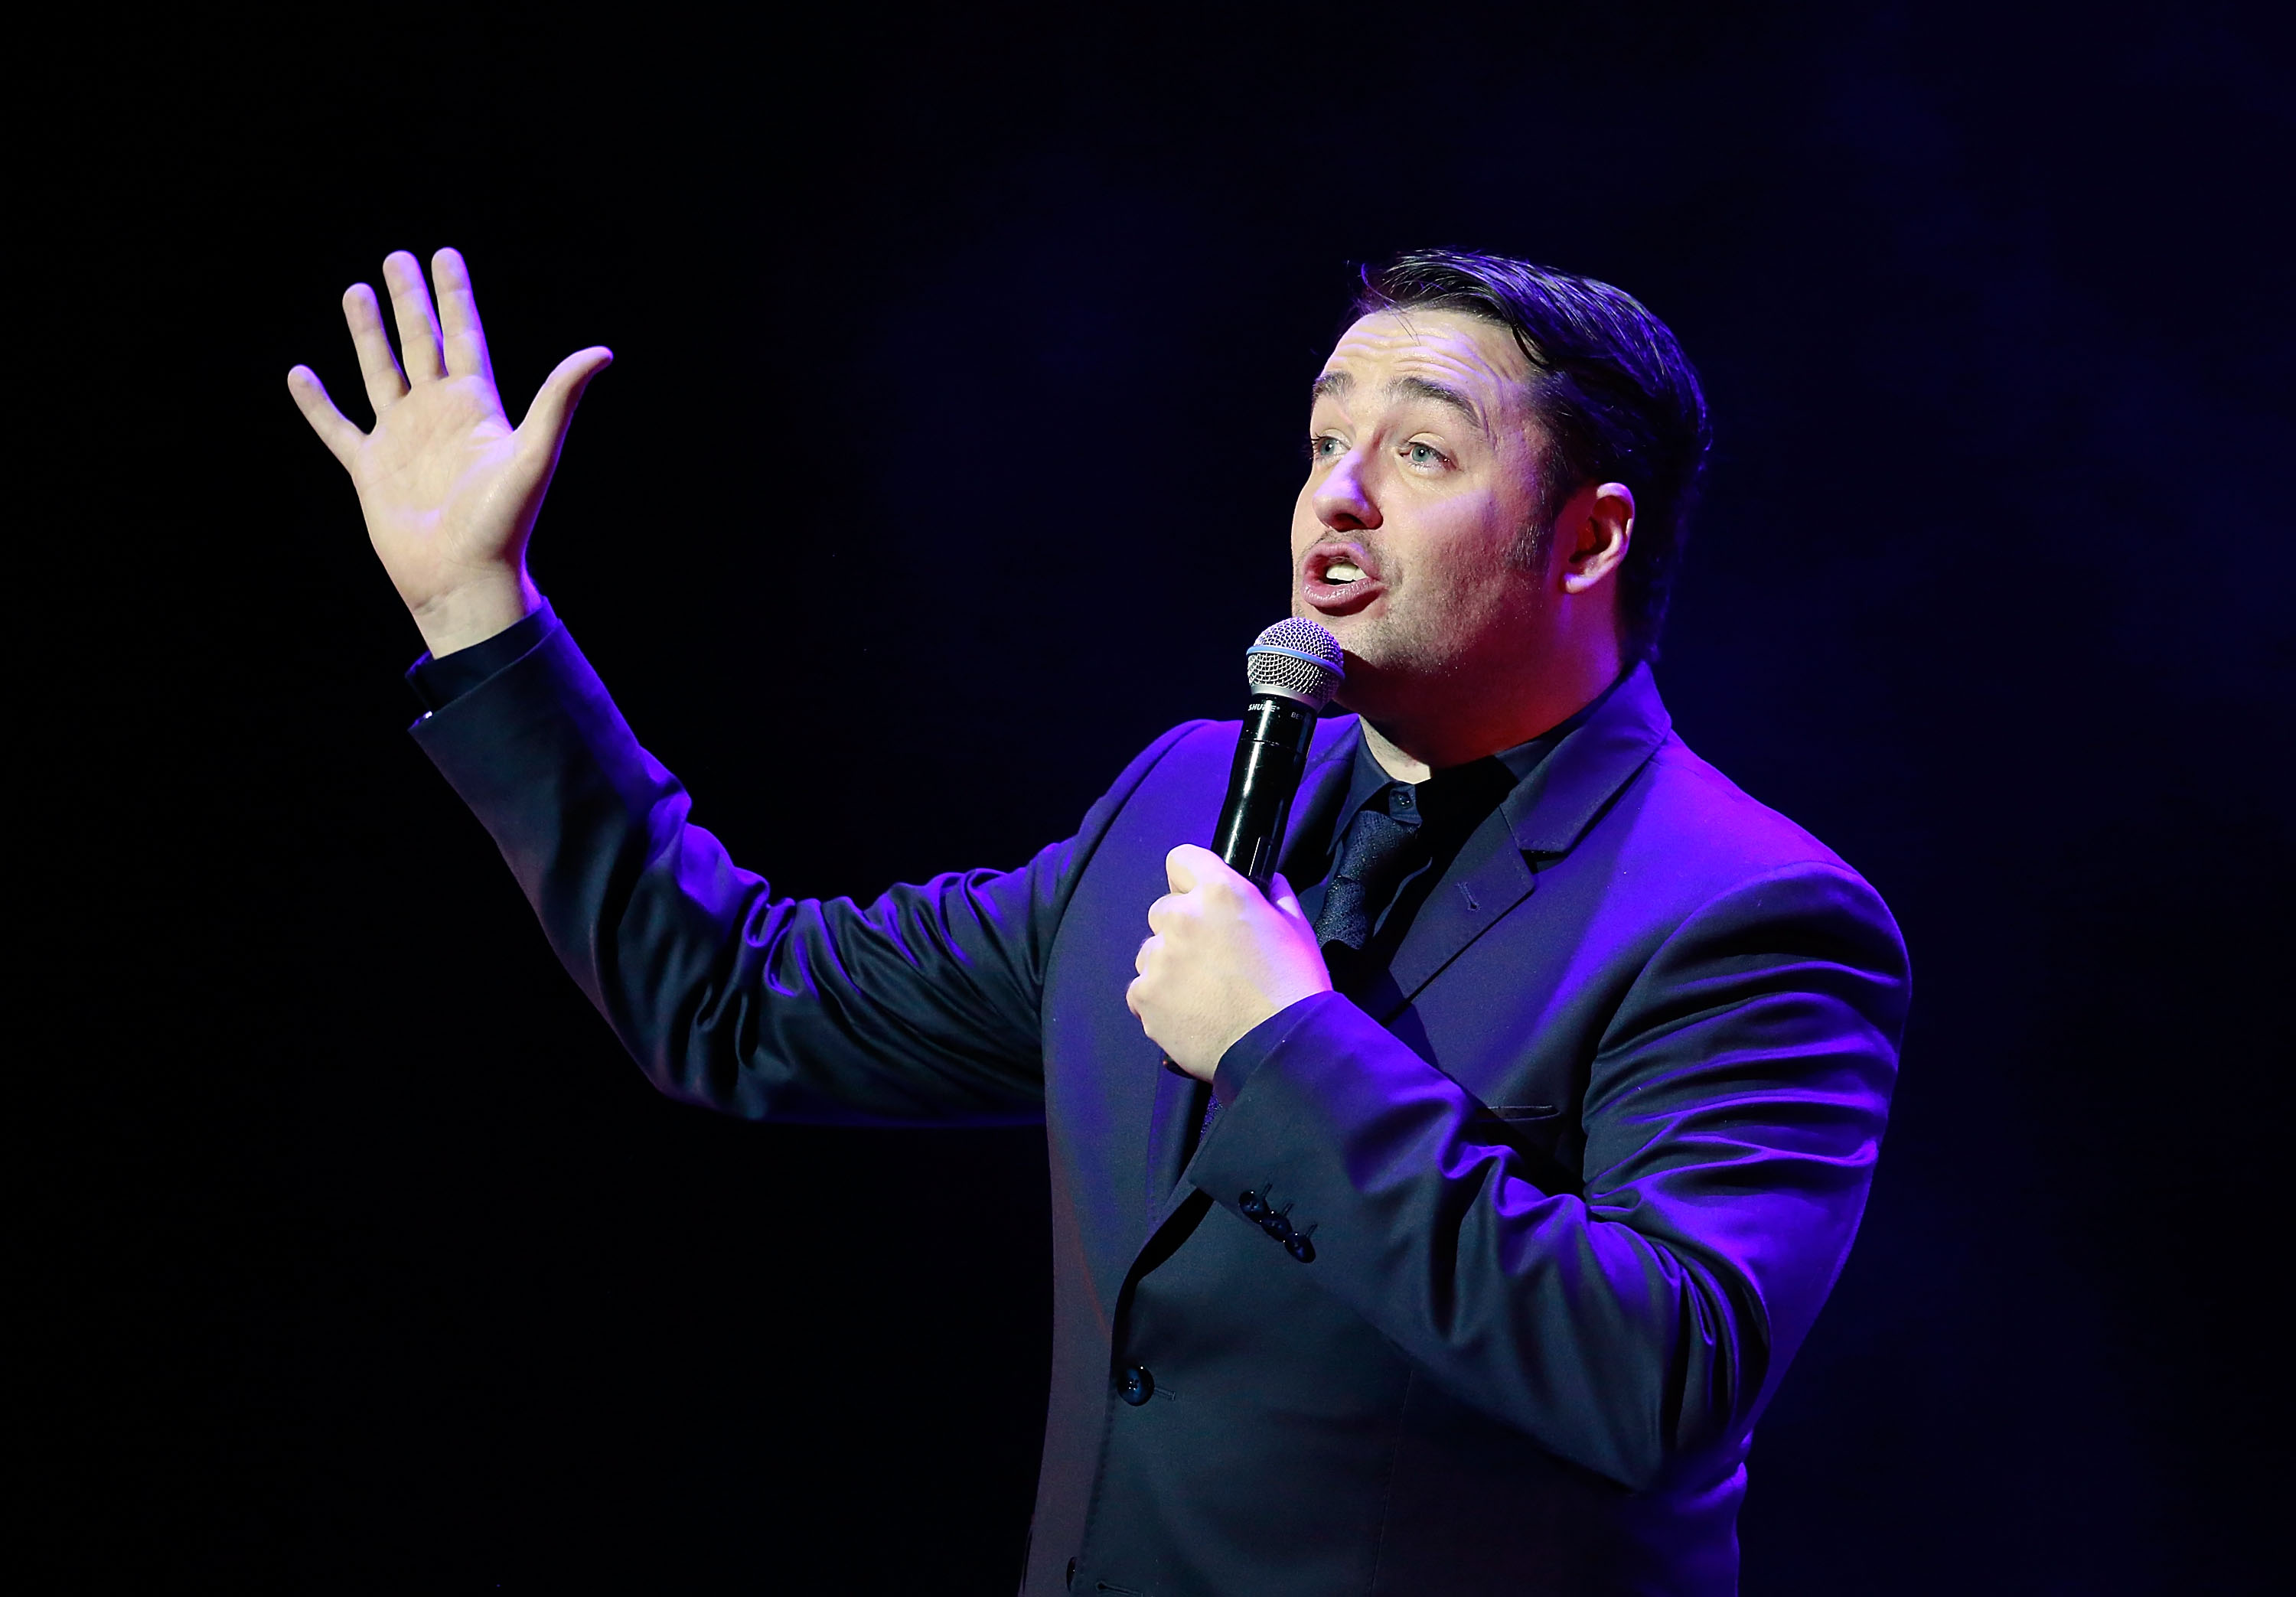 LONDON, ENGLAND - NOVEMBER 27:  Jason Manford performs on stage during Absolute Radio Live in aid of Macmillan Cancer Support, at the London Palladium on November 27, 2016 in London, England.  (Photo by John Phillips/John Phillips/Getty Images)